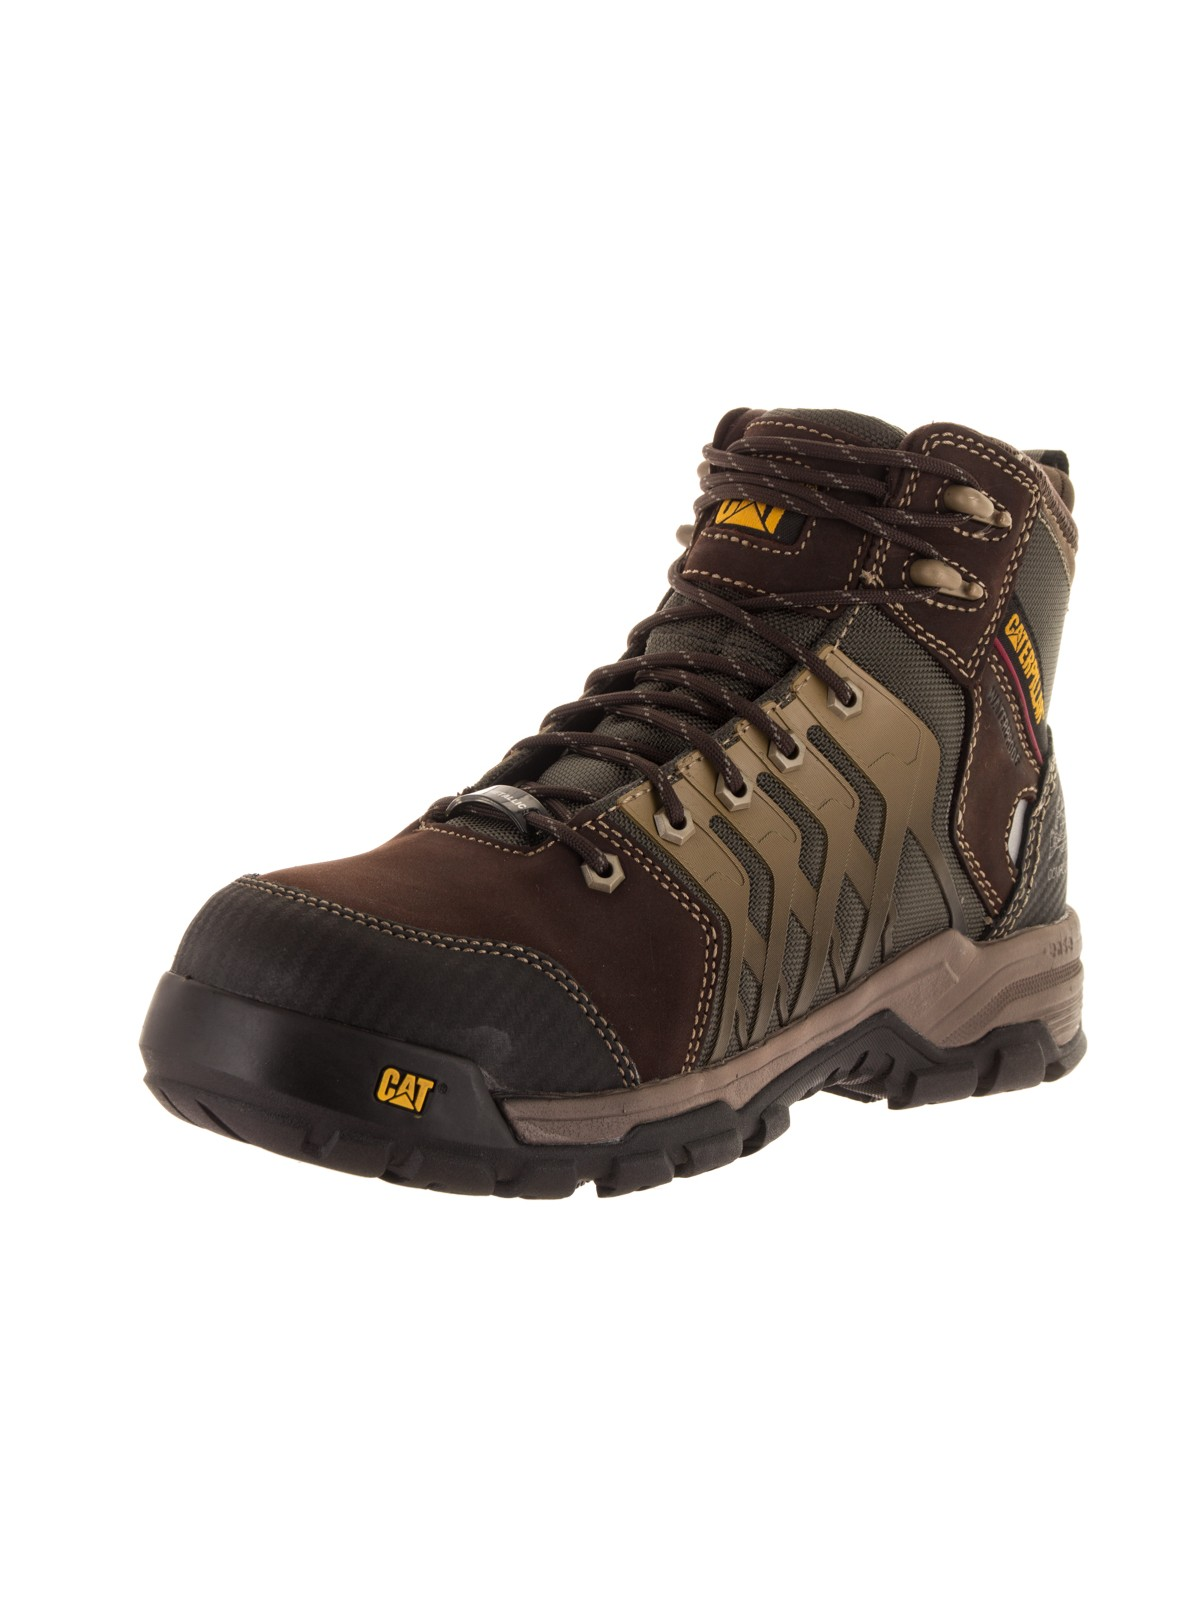 Caterpillar Men's Induction WP Composite Toe Boot